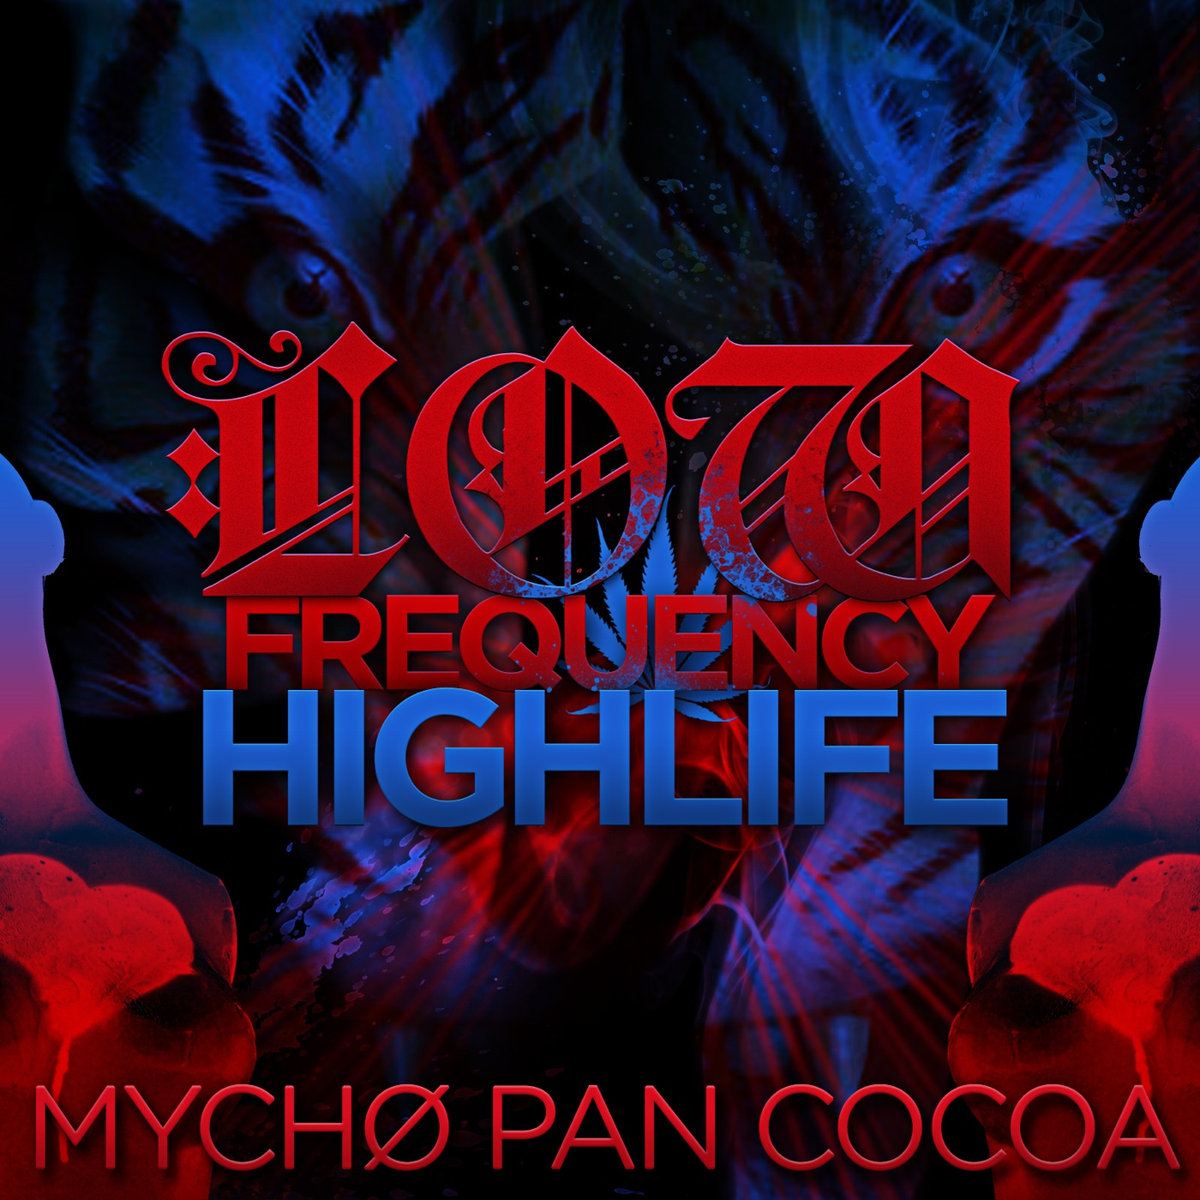 Mycho Pan Cocoa - The Devil's Pan Flute @ 'Low Frequency High Life' album (electronic, dubstep)